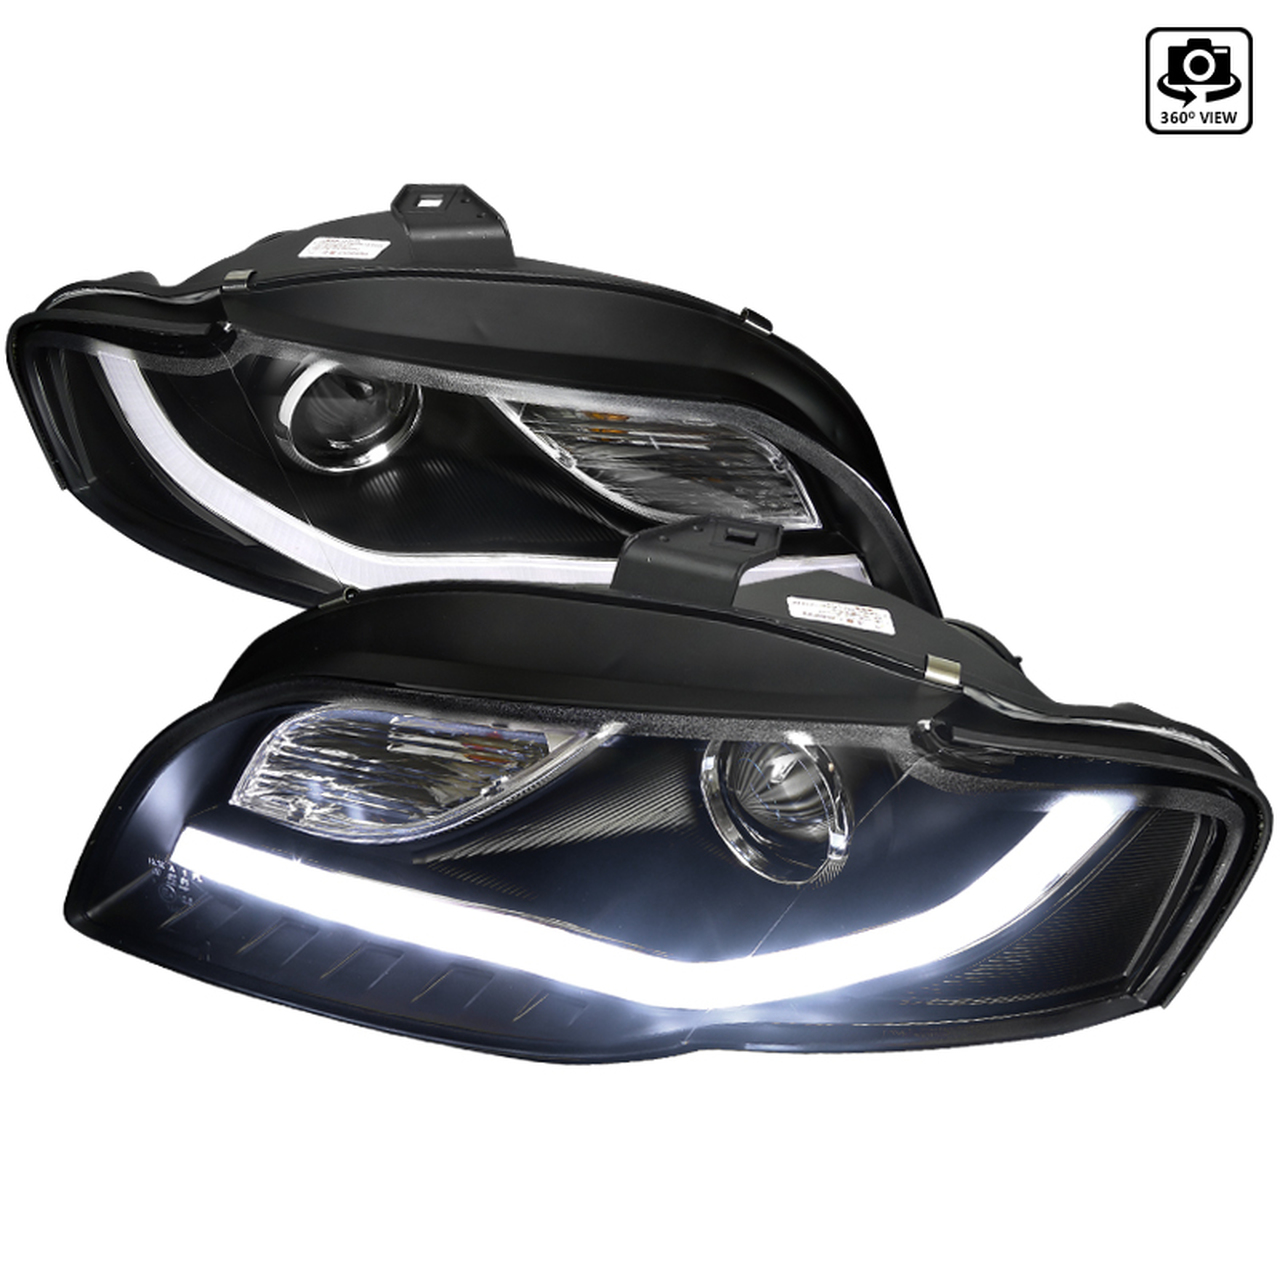 Spec-D Tuning Black R8 Style With Dual Signal Projector Headlights - Spec-D Tuning 2LHP-A406JM-8V2-TM